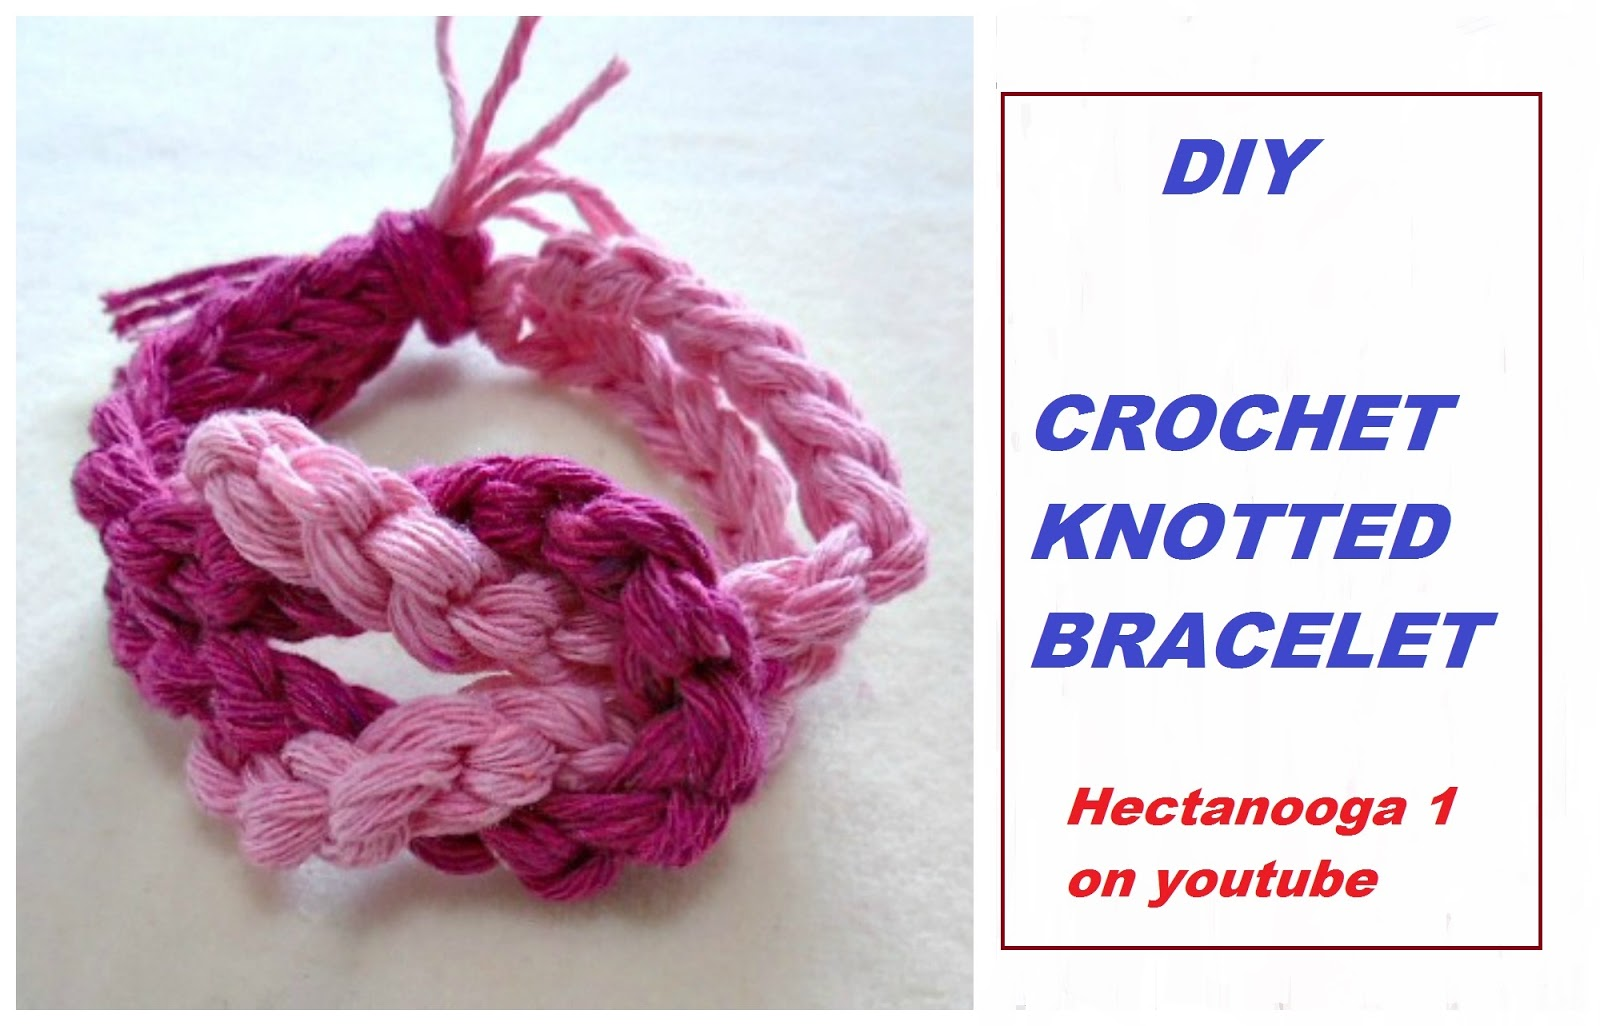 projects maker knotted leather pin crate bracelet knot